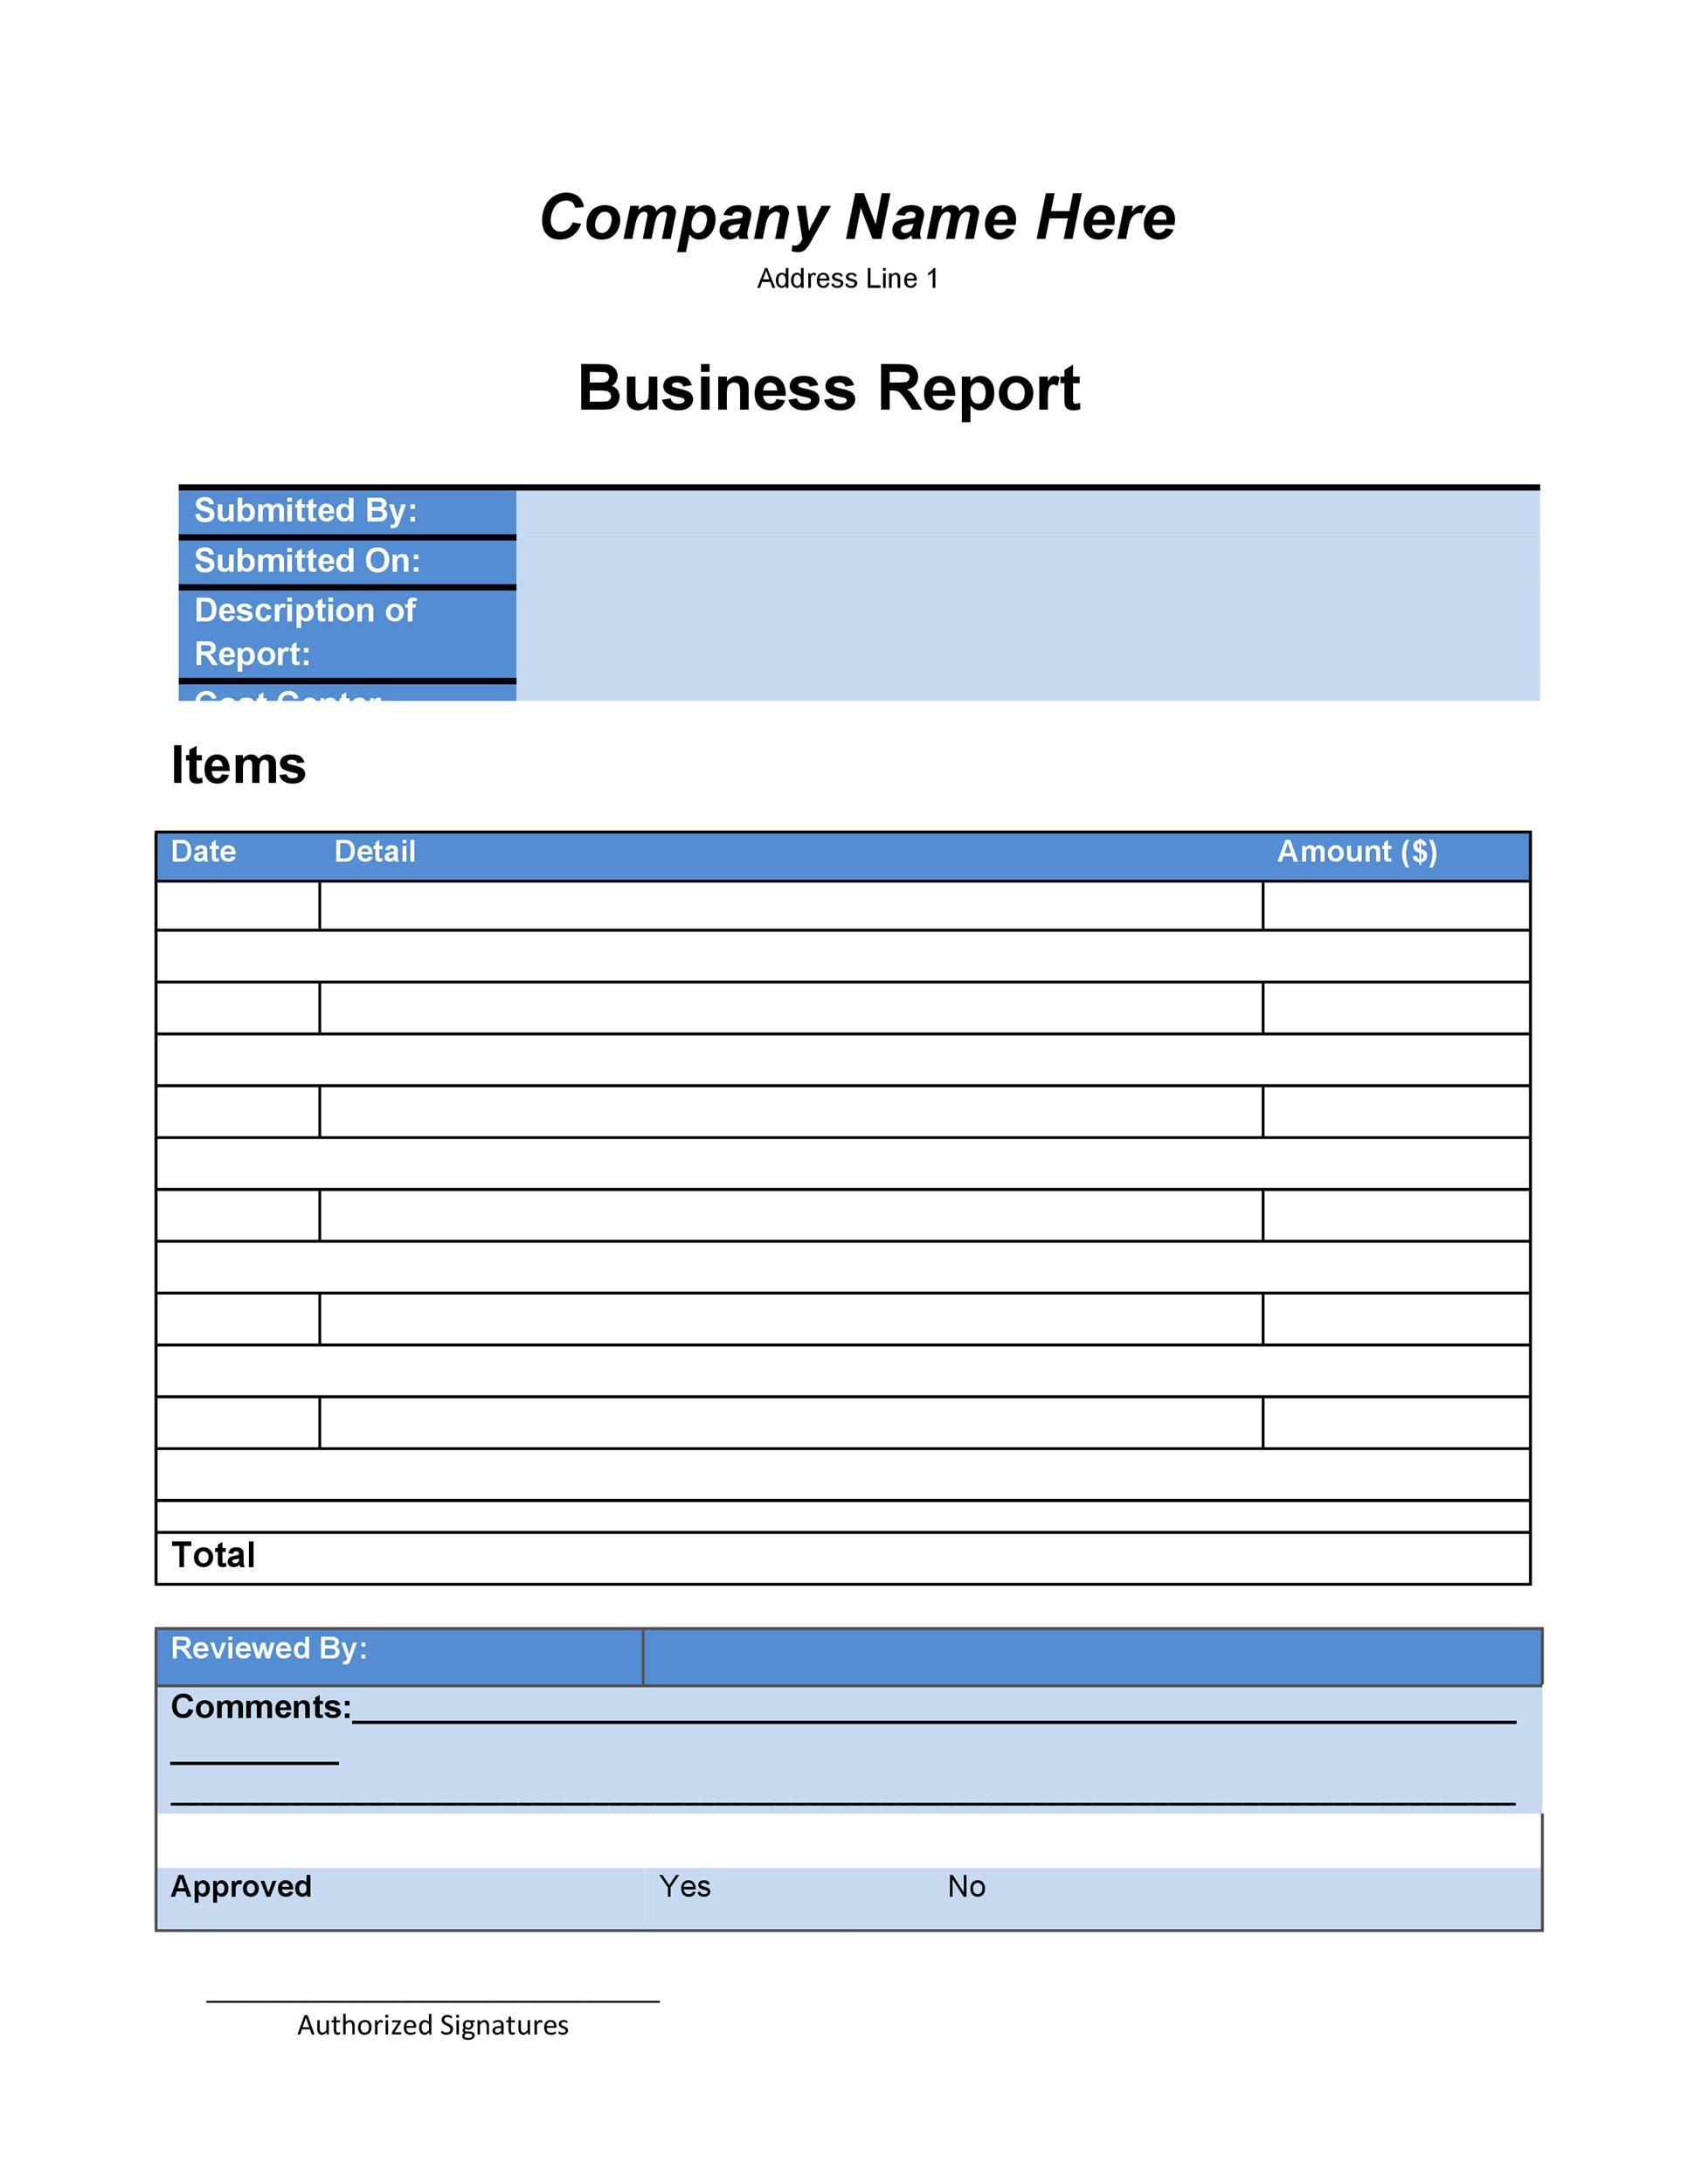 business-report-template-03.jpg